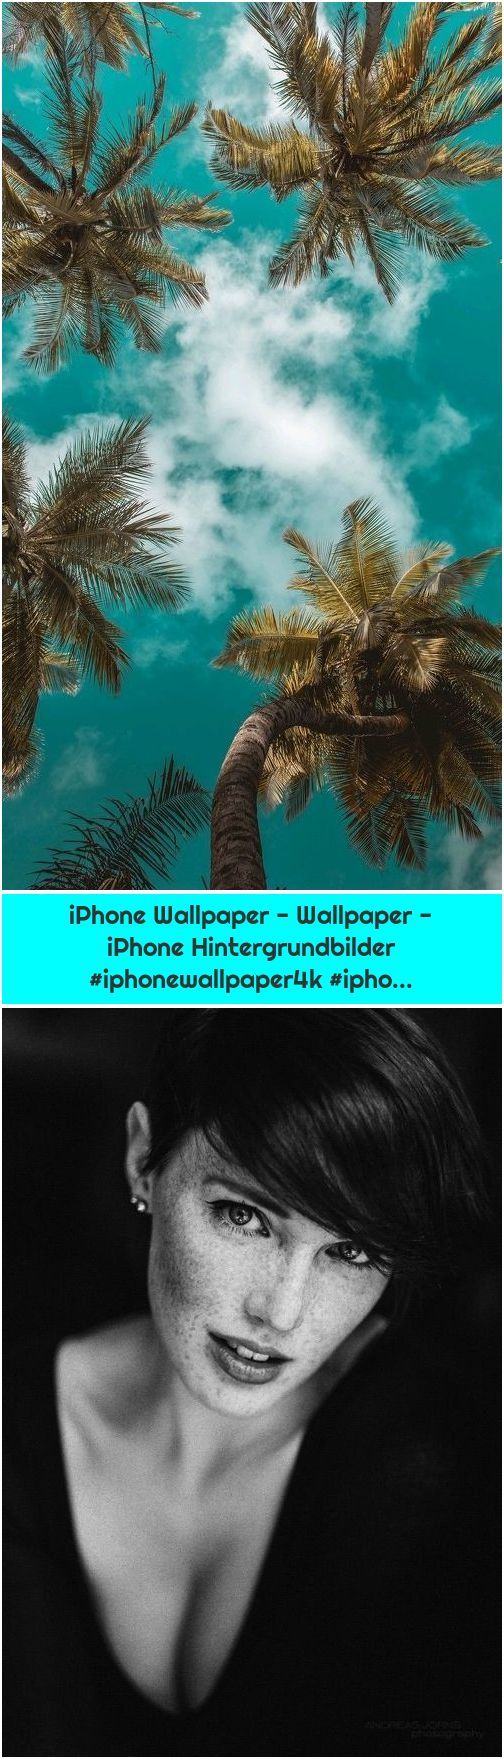 1. Idea / inspiration for the portrait of a woman. Portrait of a woman – photo shoot – … Idee/Inspiration #Hintergrundbilder, #Idea, #Inspiration, #Ipho, #IPhone, #Iphonewallpaper4K, #Photo, #Portrait, #Shoot, #Wallpaper, #Woman